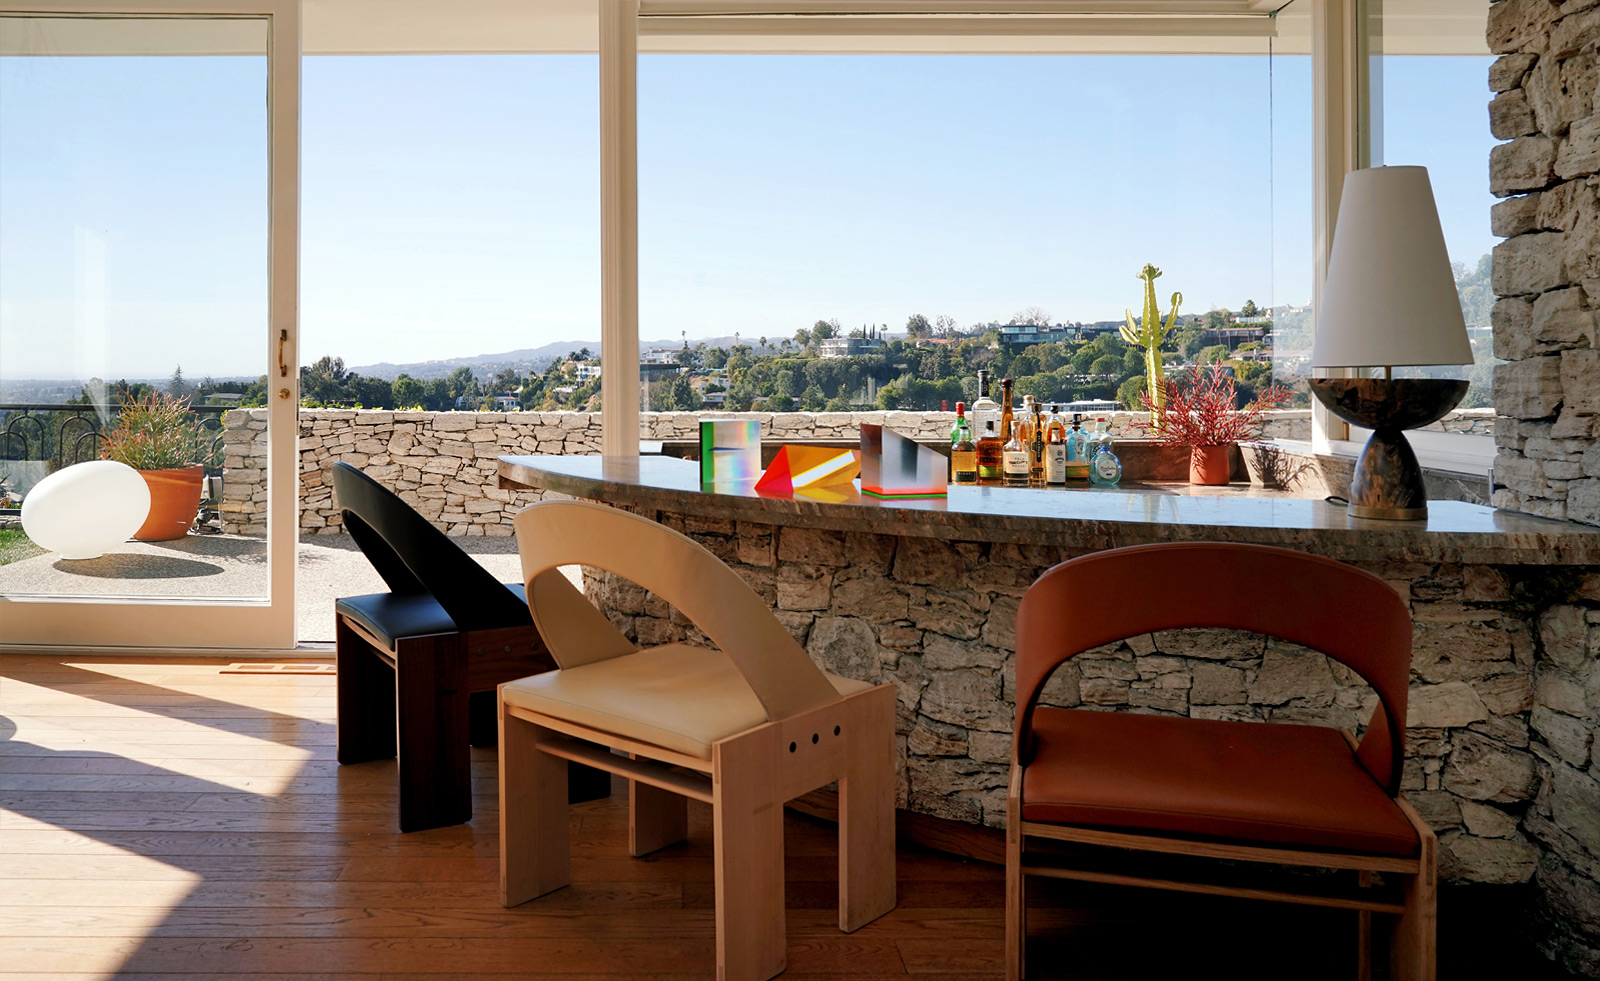 The stone bar at the Trousdale Estate, overlooking Beverly Hills